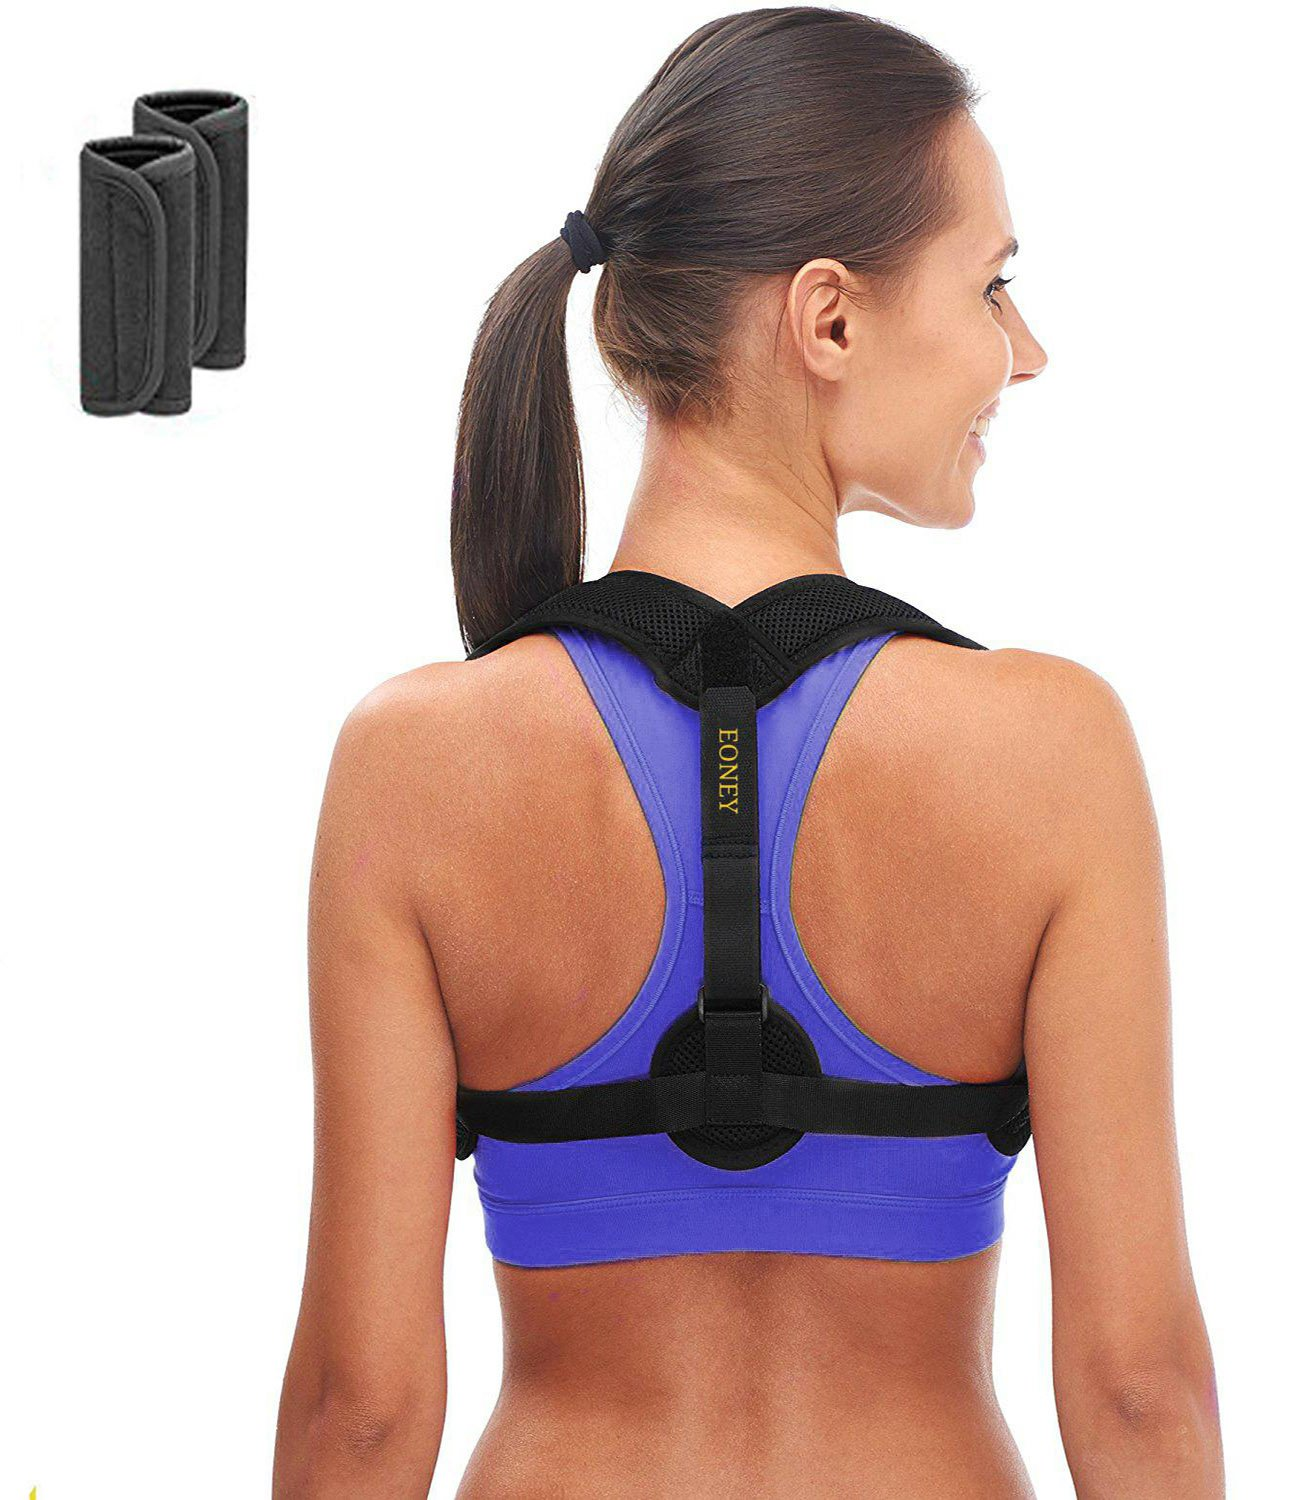 Posture Corrector Brace-Eoney Back Corrector for Man and Women-Effective and Comfortable Adjustable Back Shoulder Clavicle Support Back & Neck Pain Relief Improve Your Posture